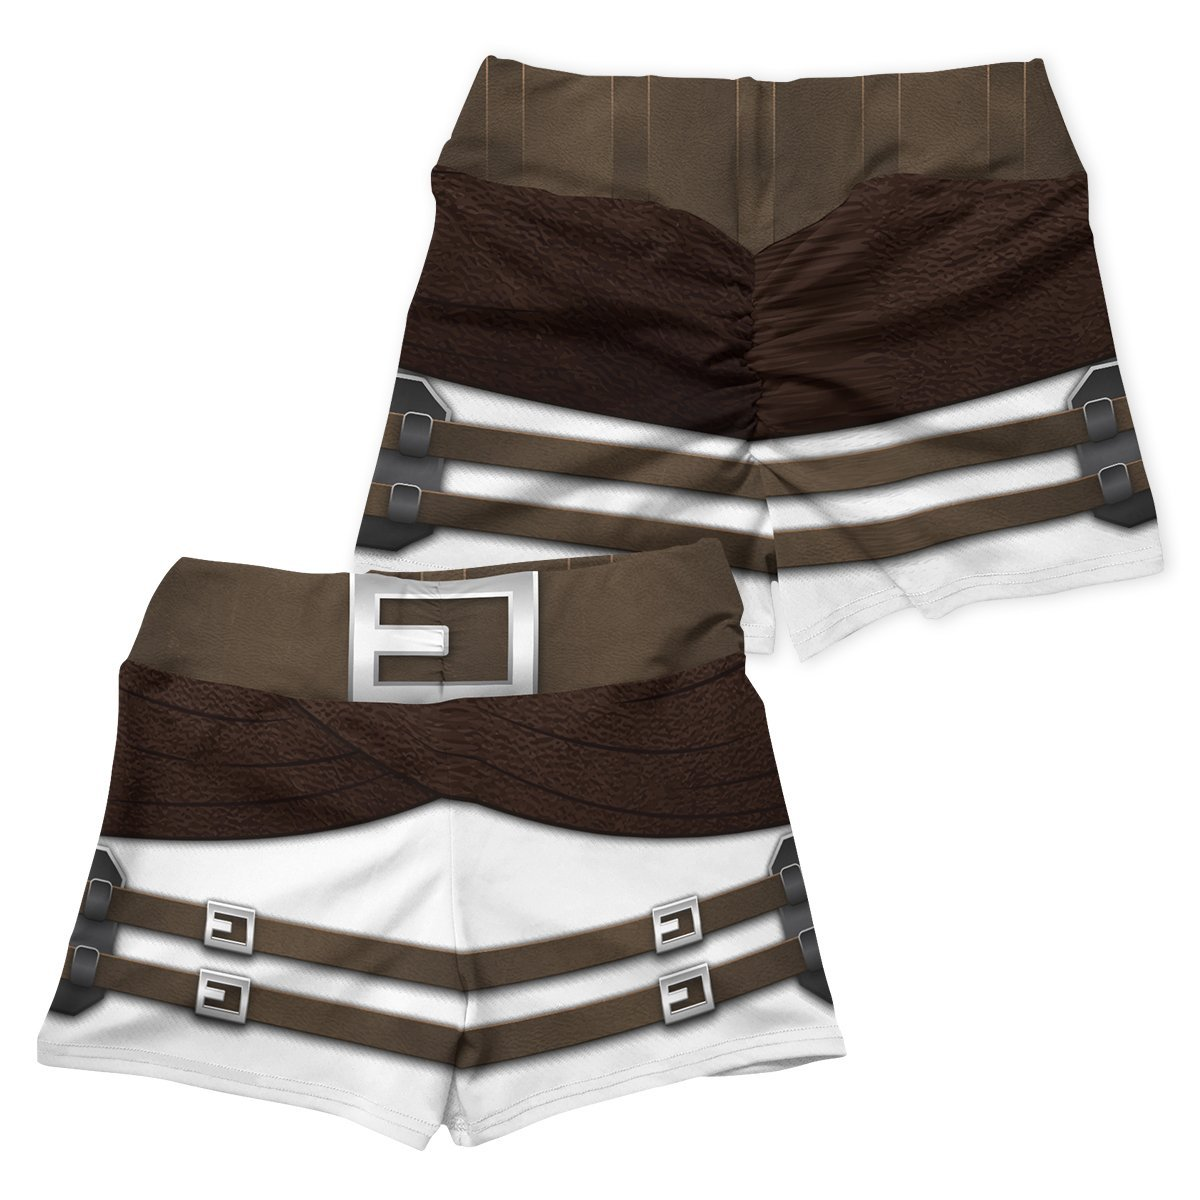 aot corps active wear set 825129 - Anime Swimsuits